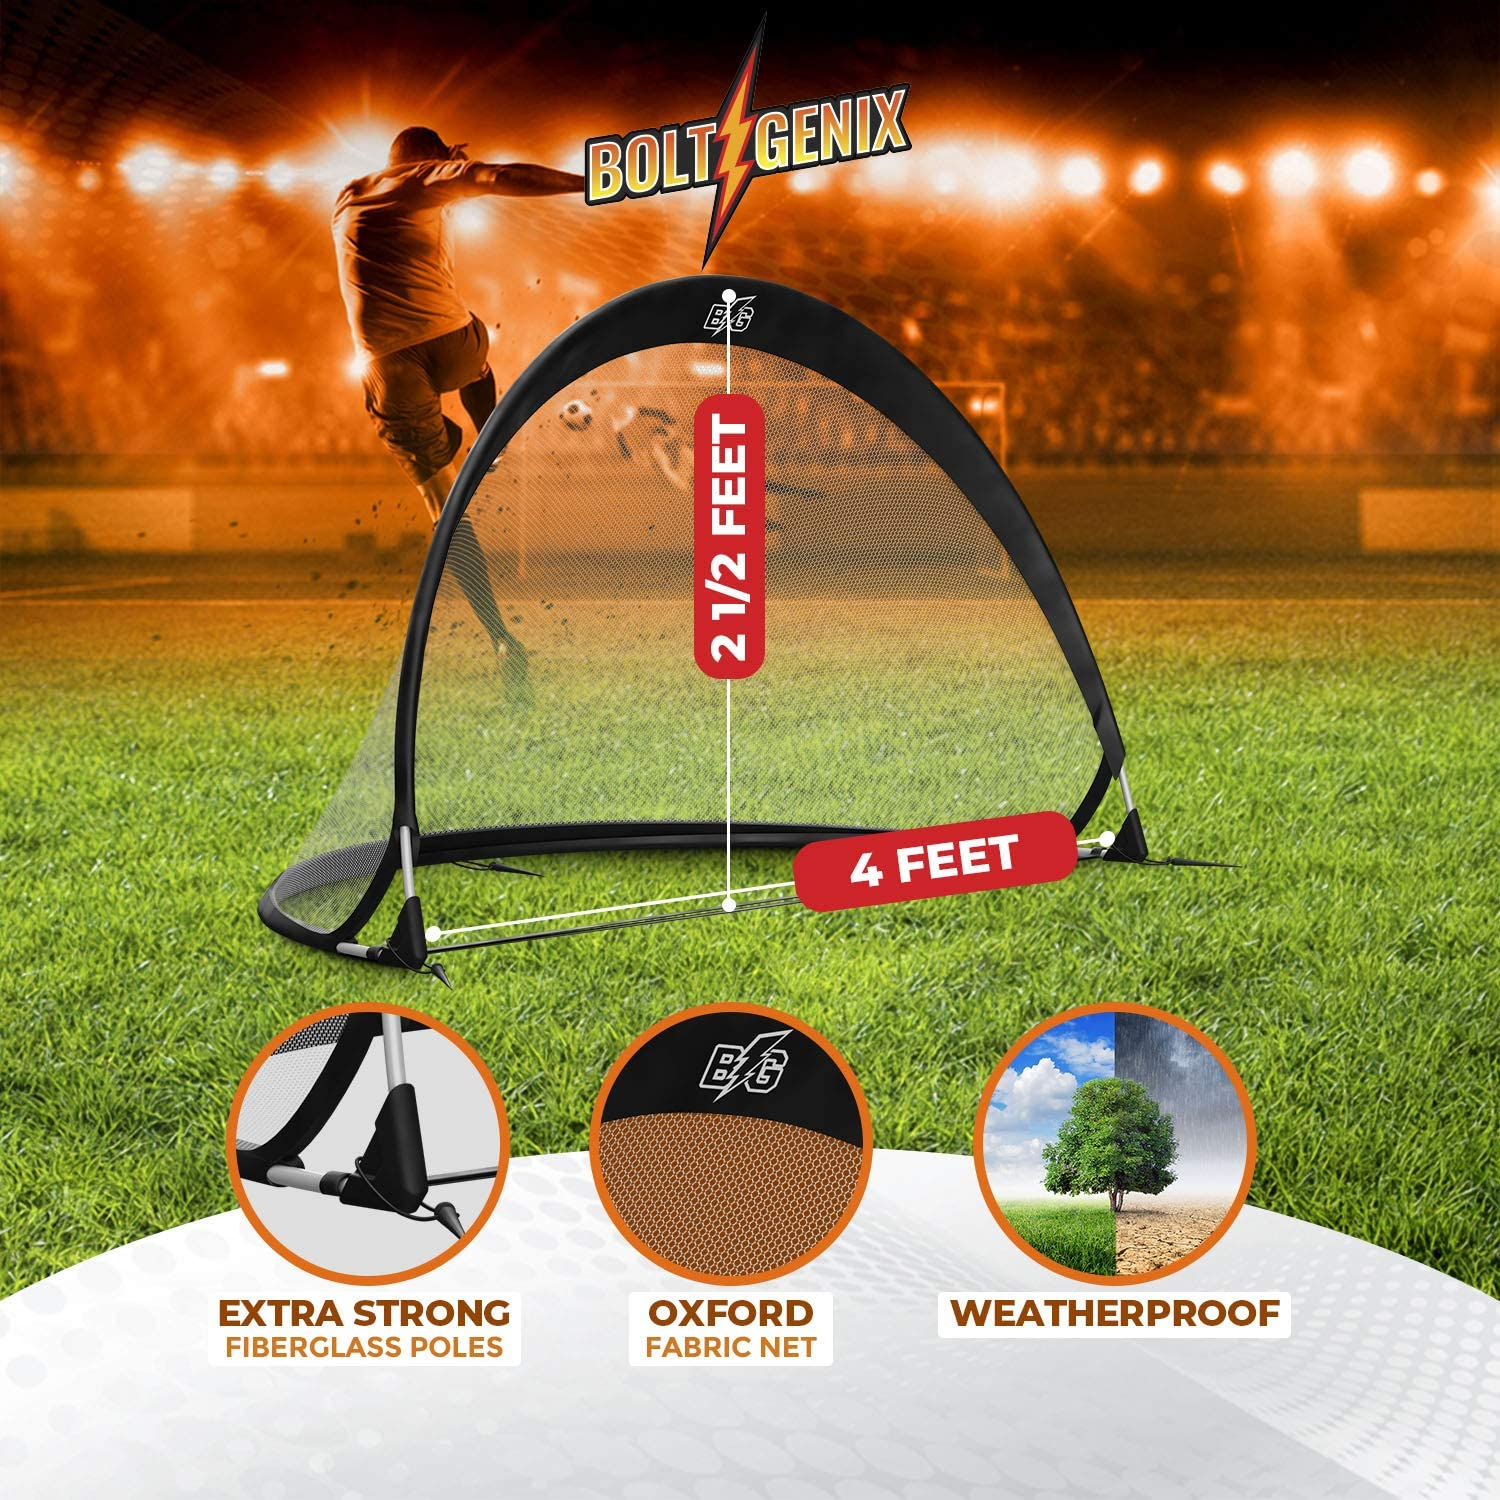 Bolt Genix Small Portable Soccer Goals - Pop Up Goals Set of 2 | Made for Toddlers, Teenagers and Pros | Works on Concrete, Carpet, Grass, Sand, and Turf | All Weather Durability - Easily Pack and Store : Sports & Outdoors